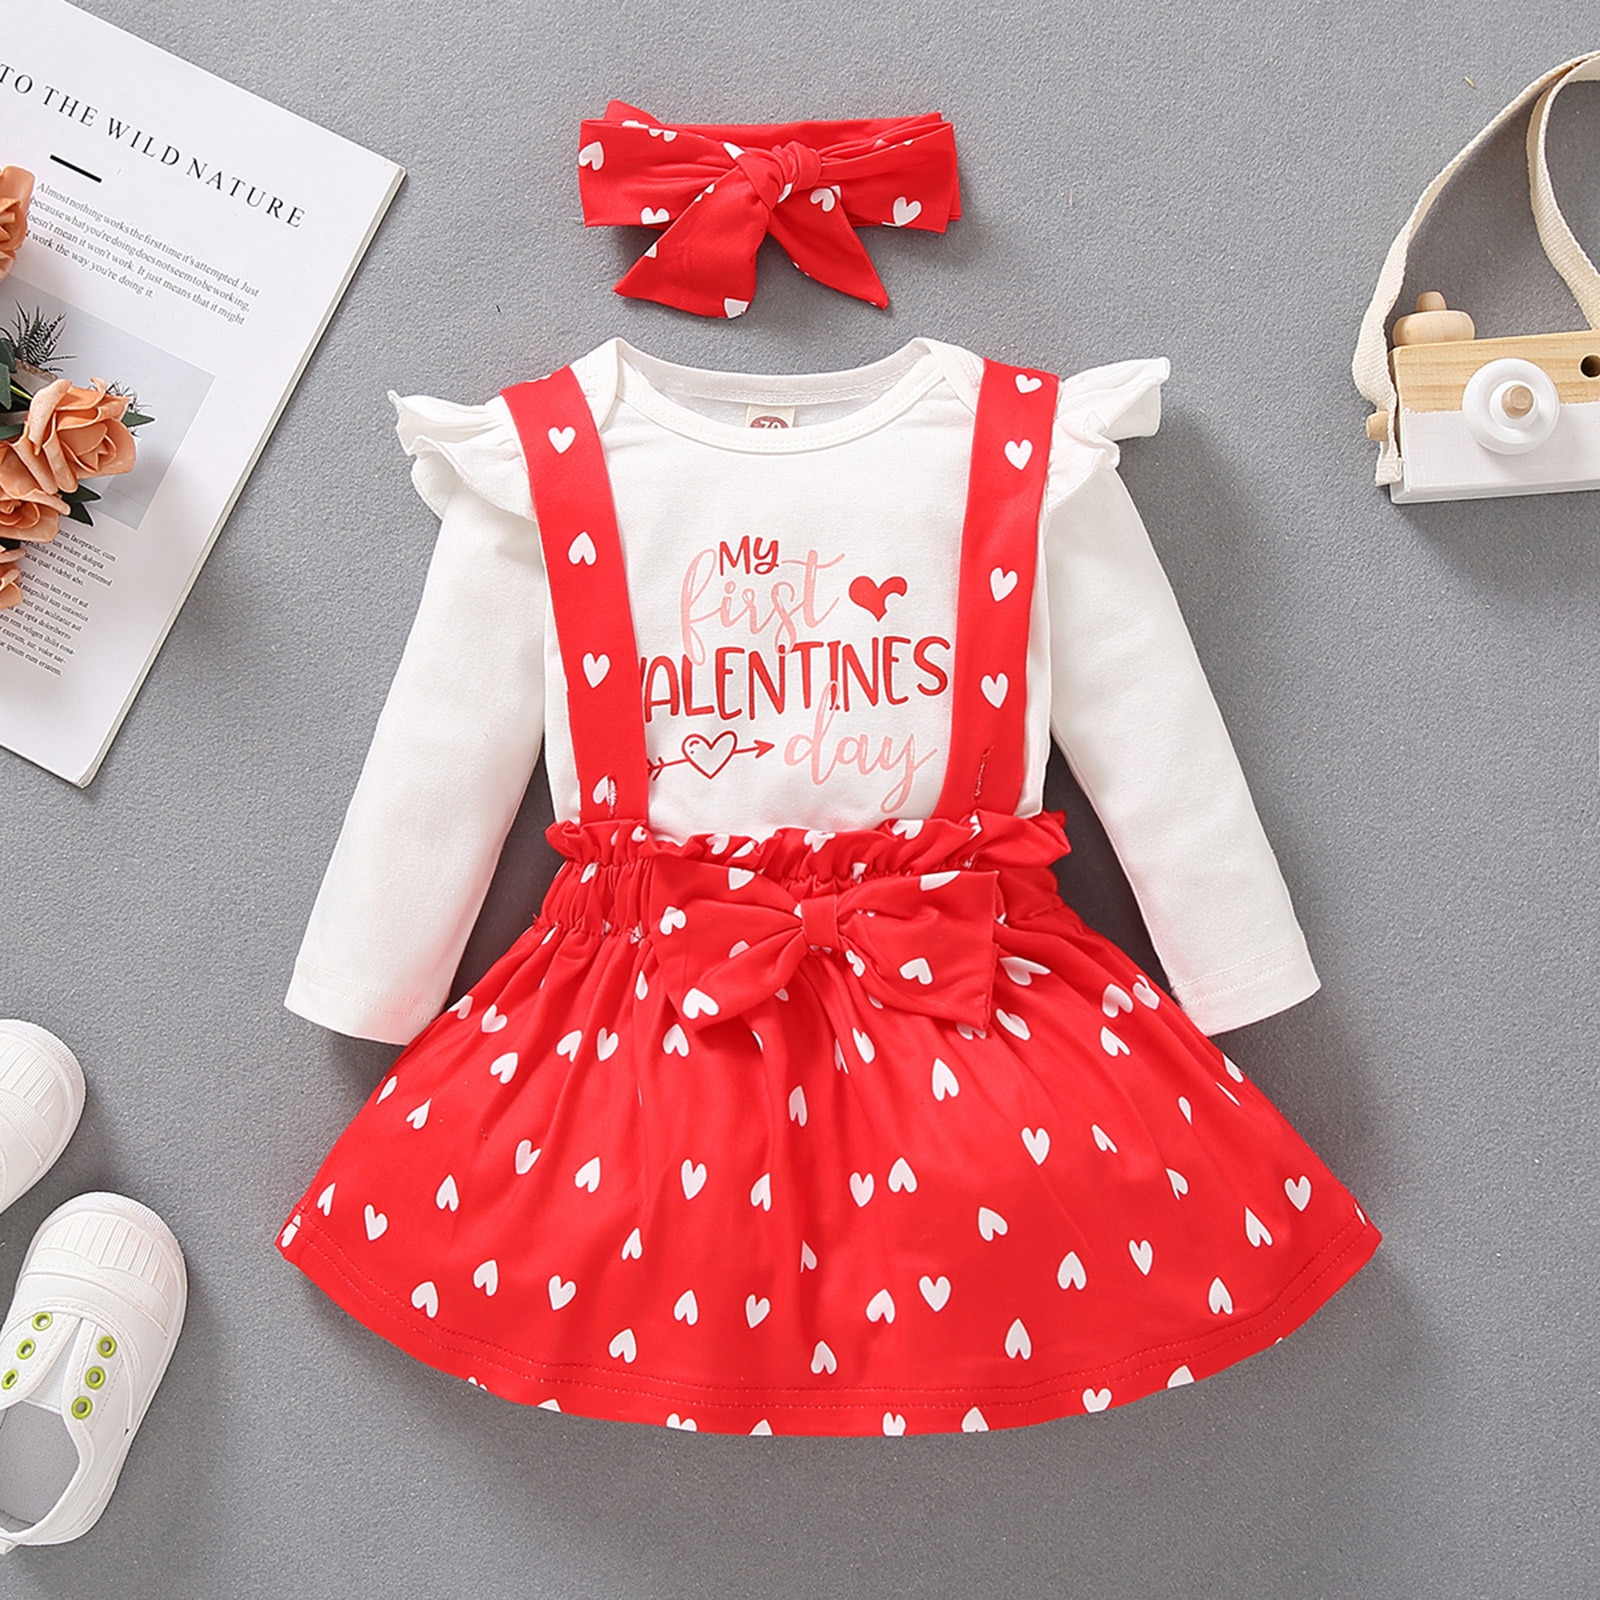 3-18Months Baby Meisje Infant Girls Valentine's Day Romper Bodysuit+Hearts Suspender Skirt Outfits+HairBand Suit Ropa Bebes 5*